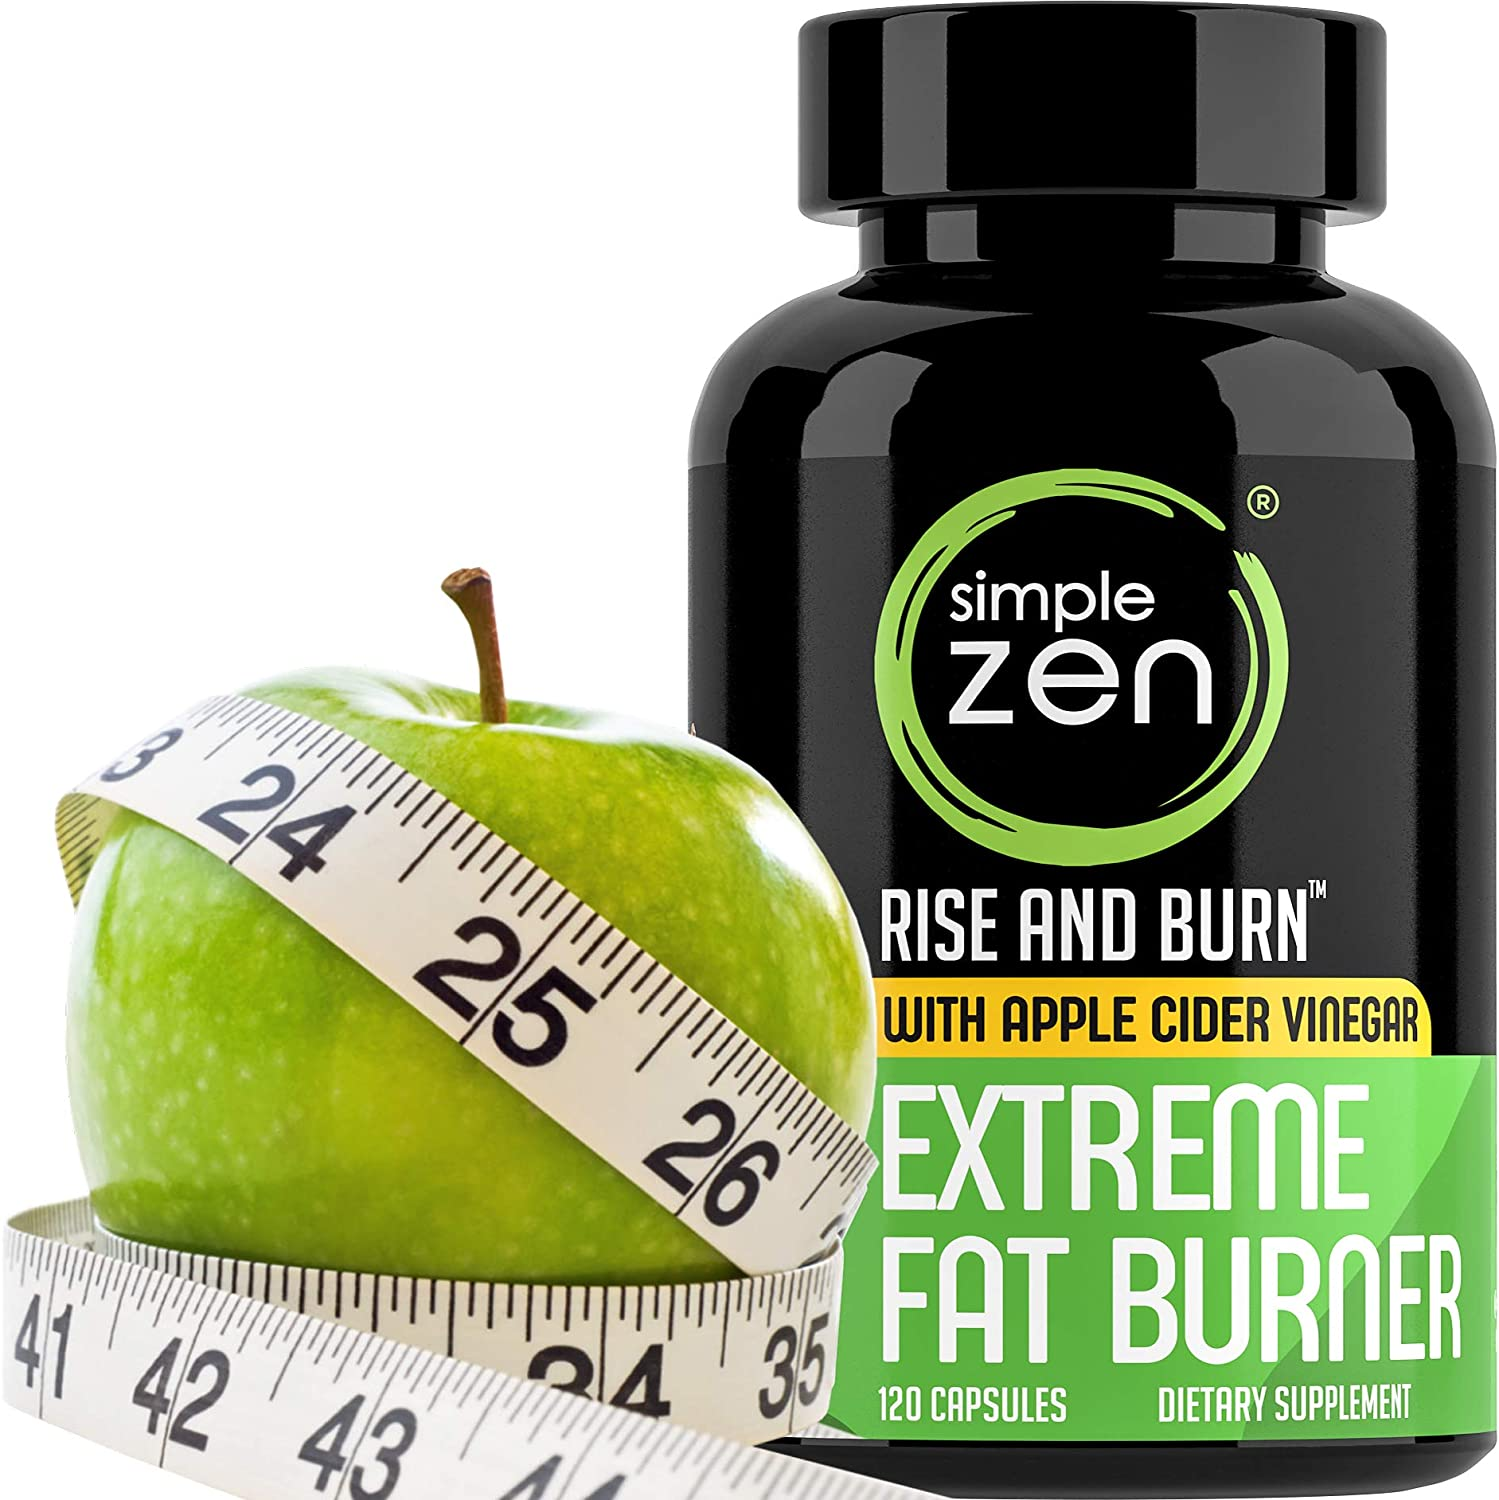 Simple Zen Metabolism Booster for Weight Loss Pills with Apple Cider Vinegar Appetite Suppressant and Green Tea Fat Burner. Best Natural Diet Pills for Women Men. Supplements with Garcinia Cambogia